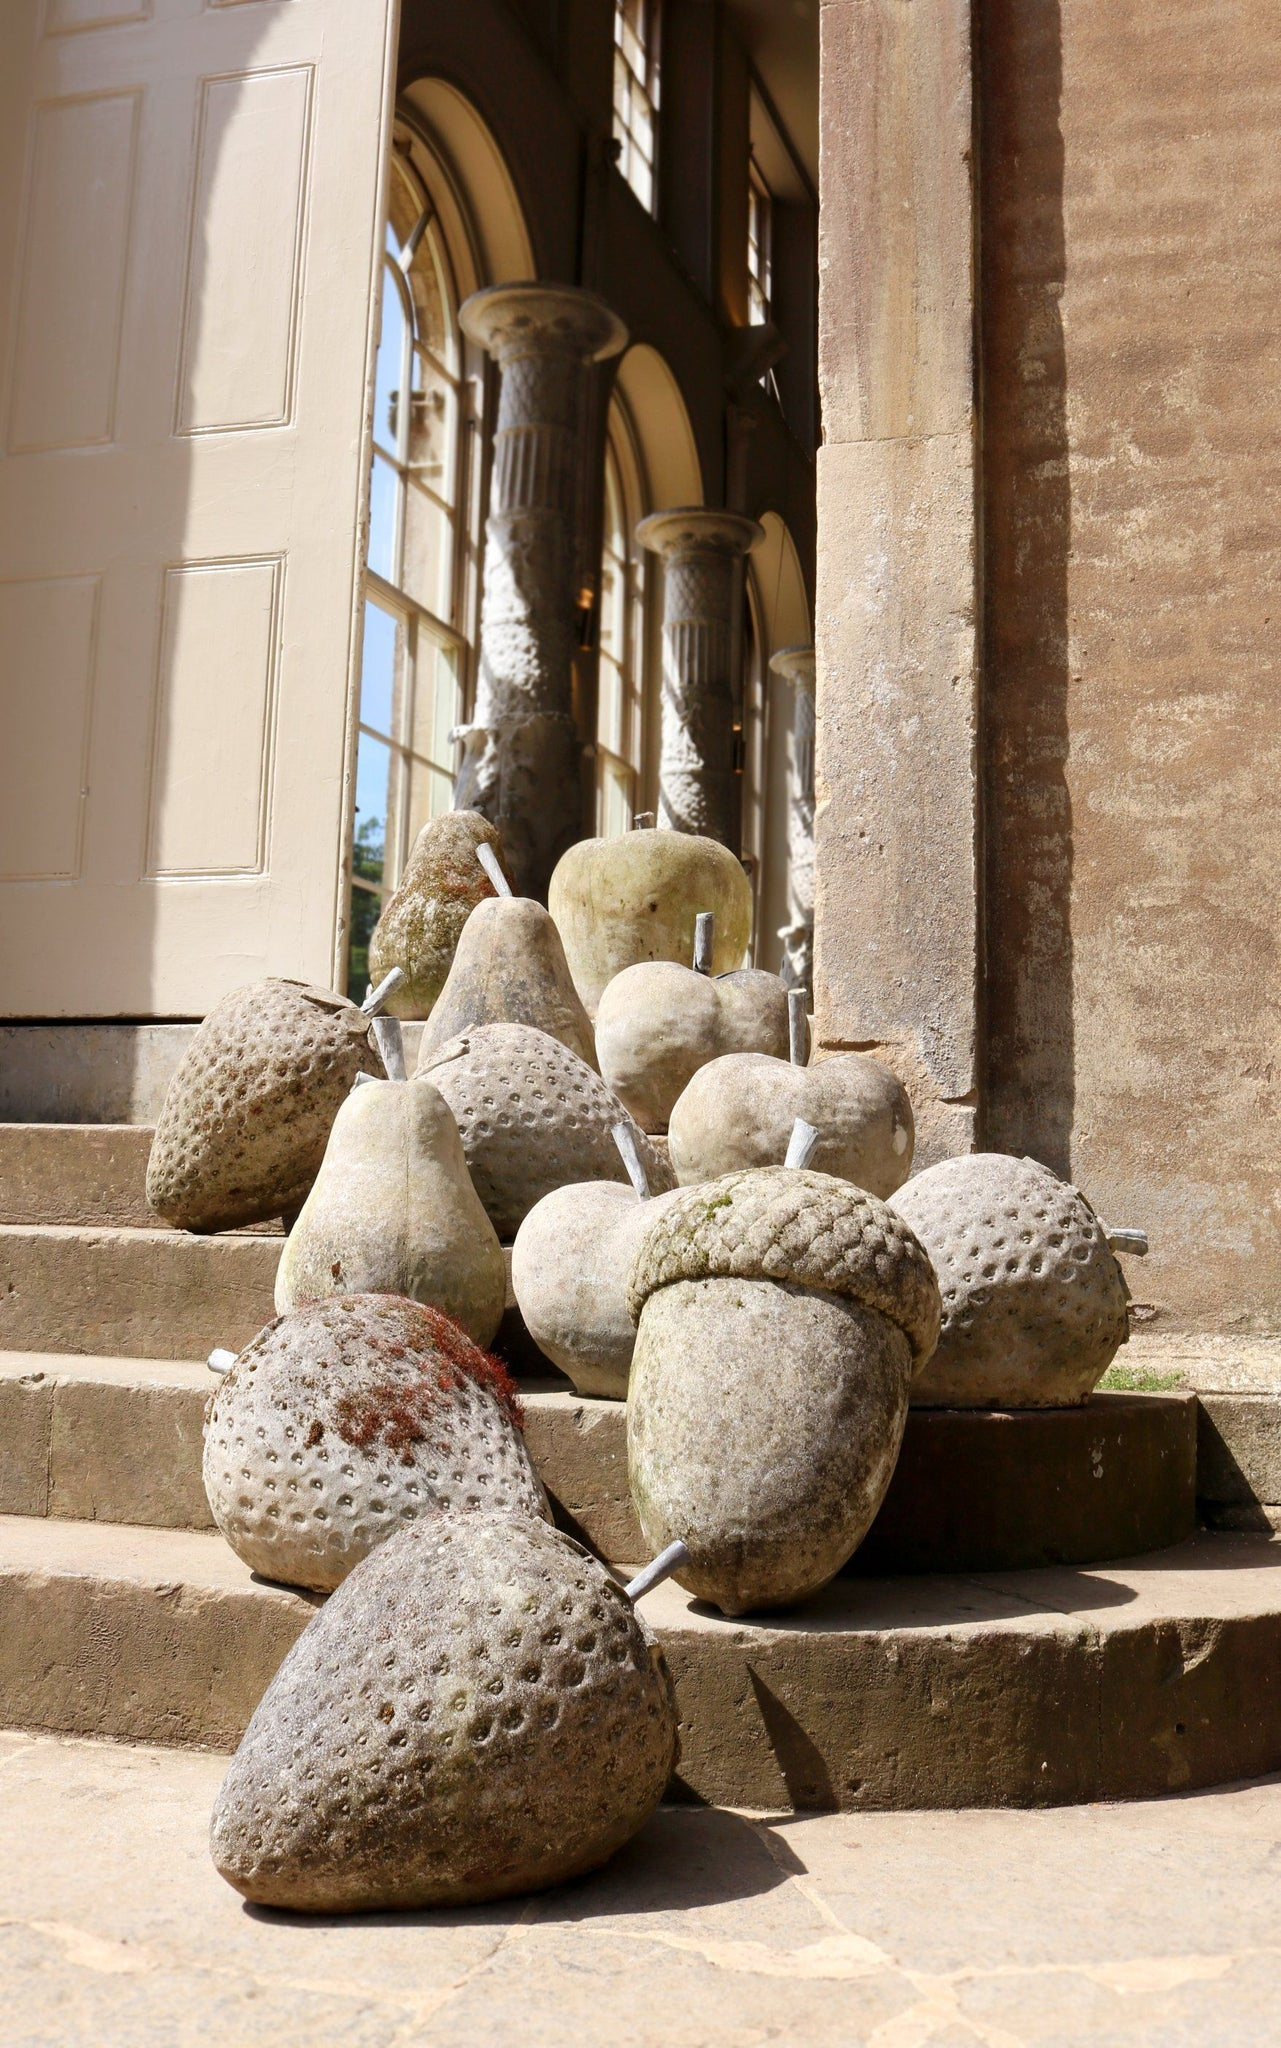 Pair of Stone Pears - A Modern Grand Tour